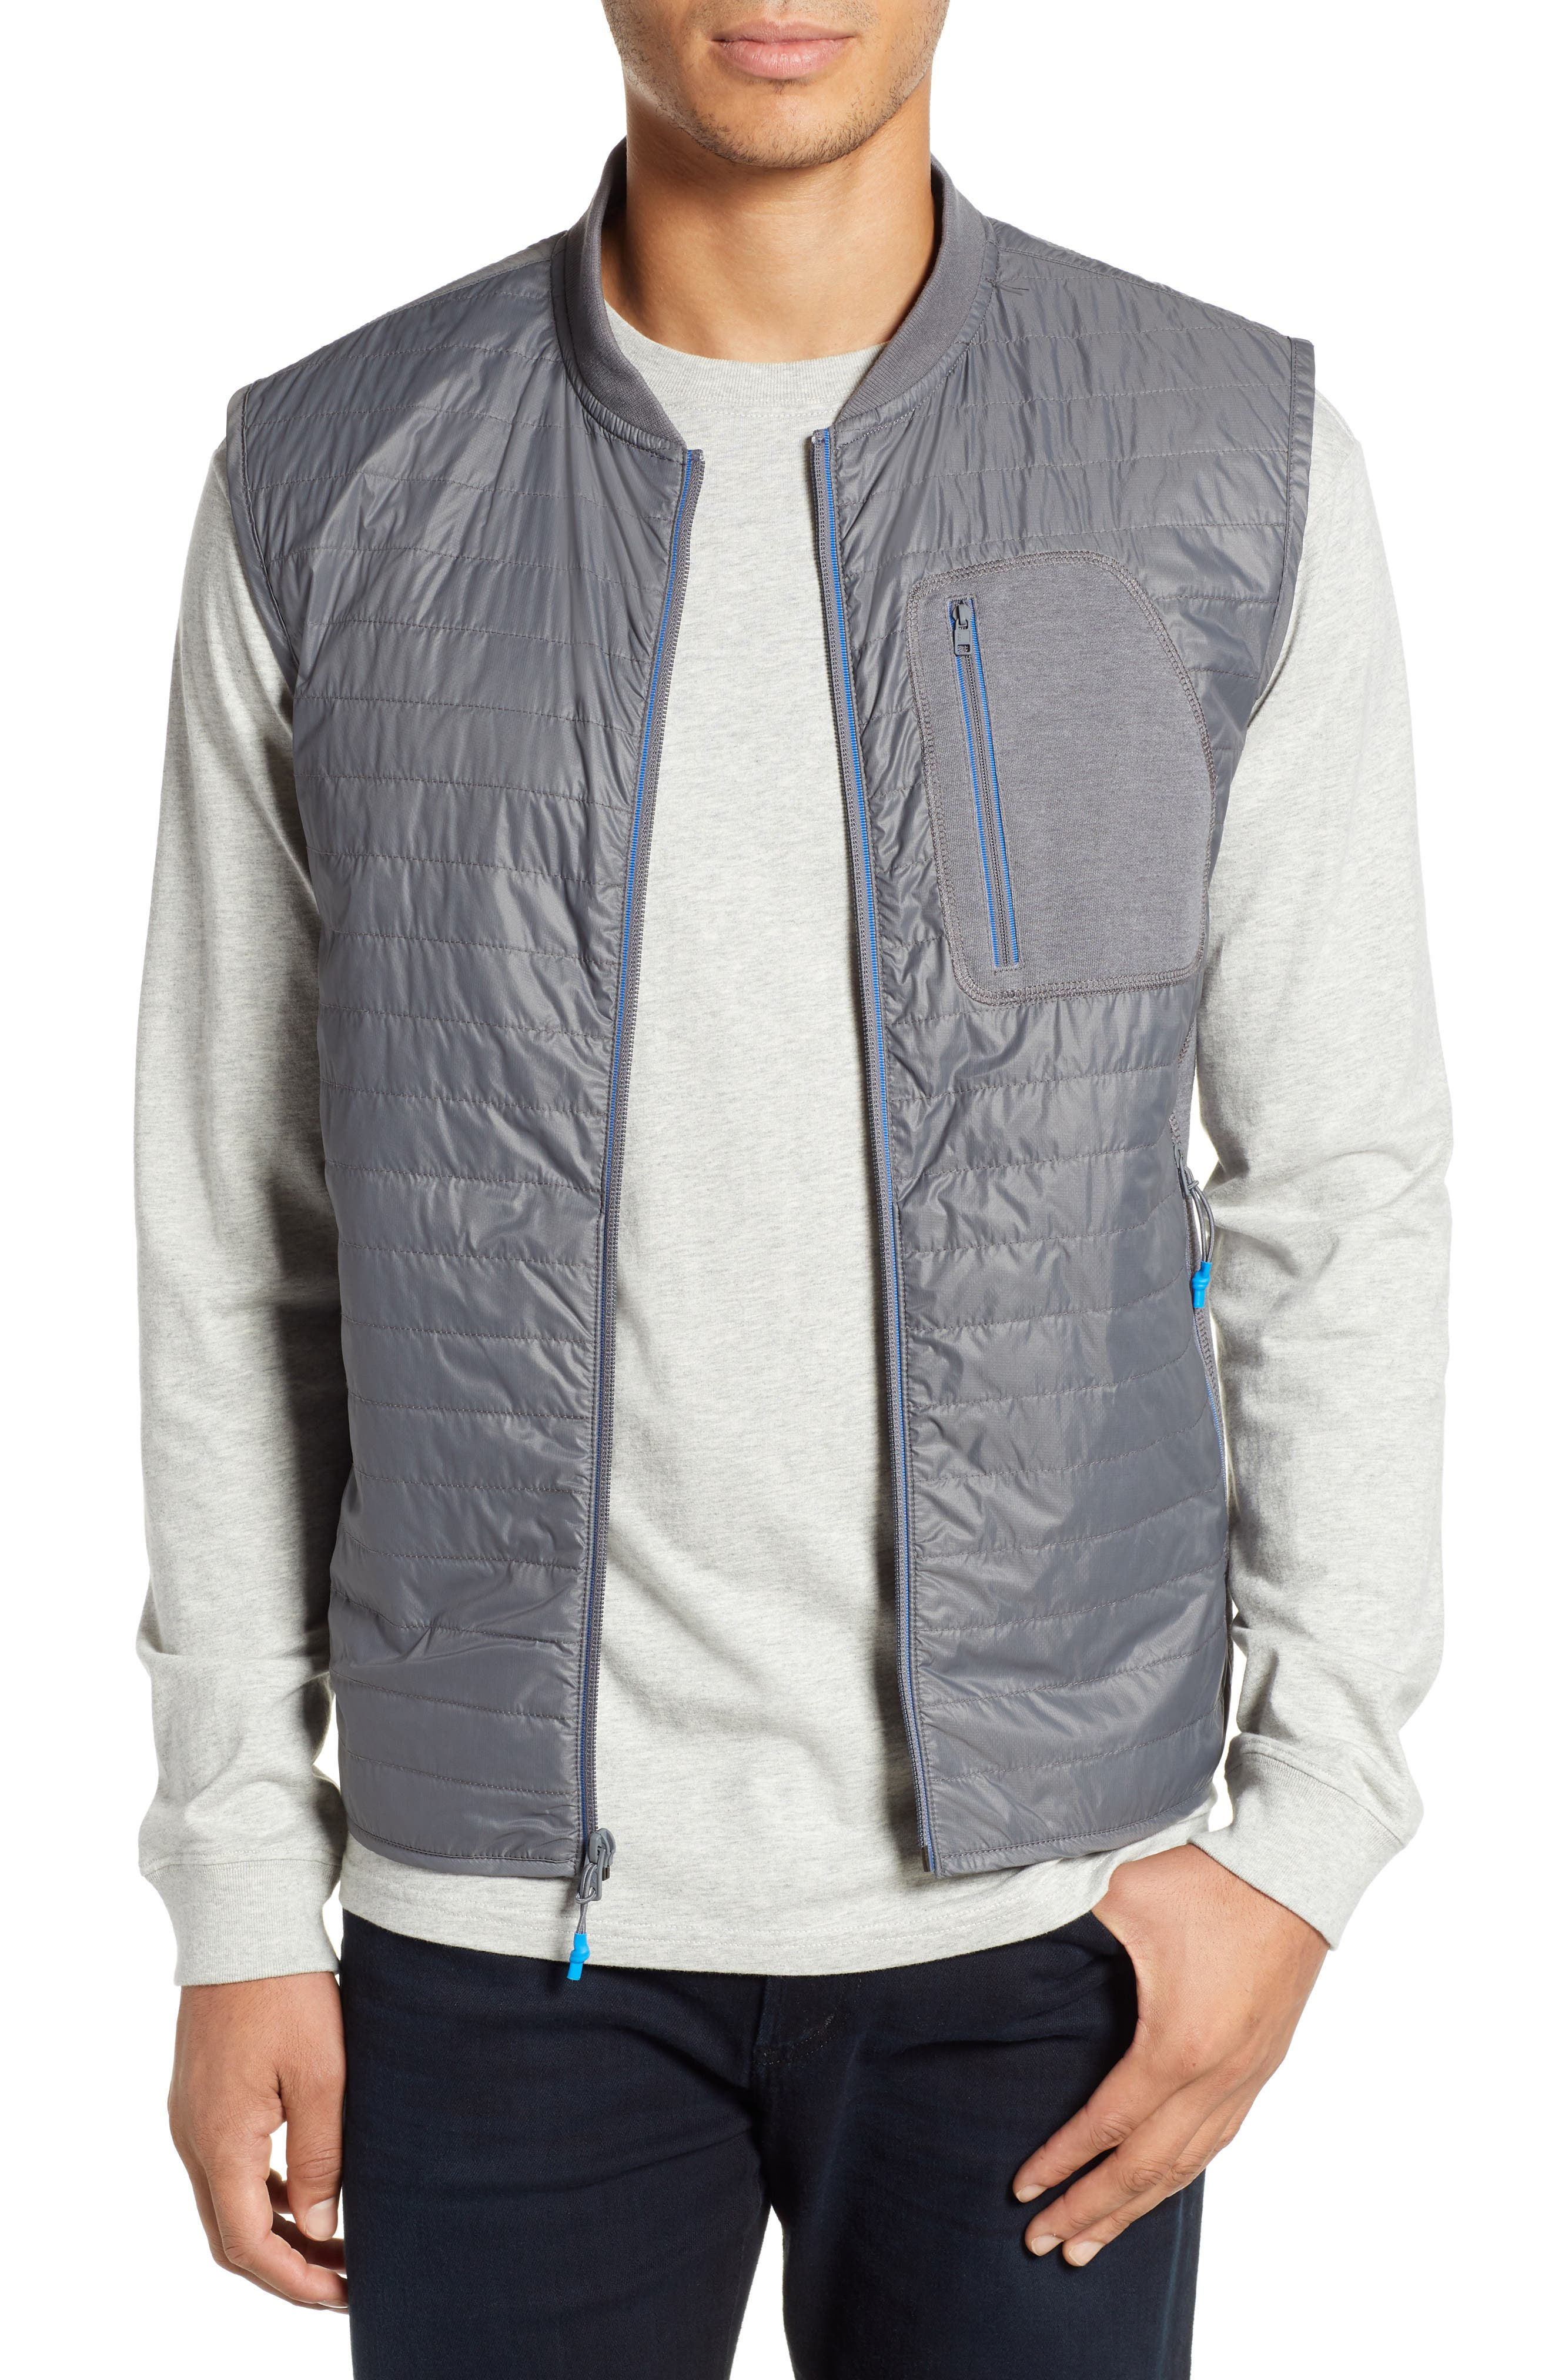 Forrest Creek Bomber Vest,                             Main thumbnail 1, color,                             SMOKED PEARL